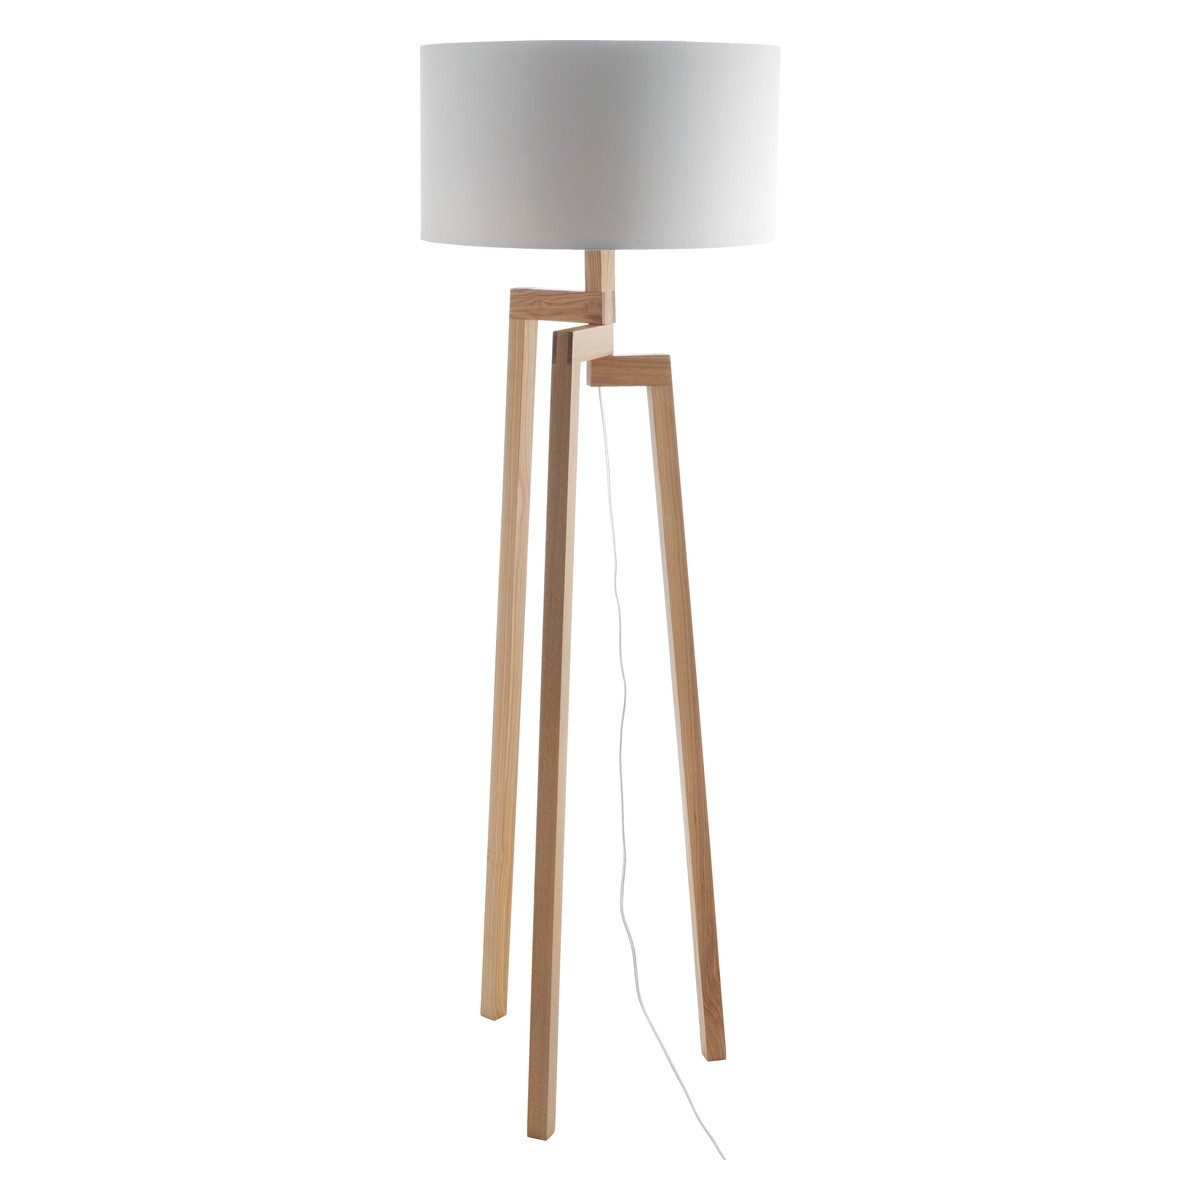 White Base Floor Lamp White Wooden Floor Lamp Feeling Of Symmetry And